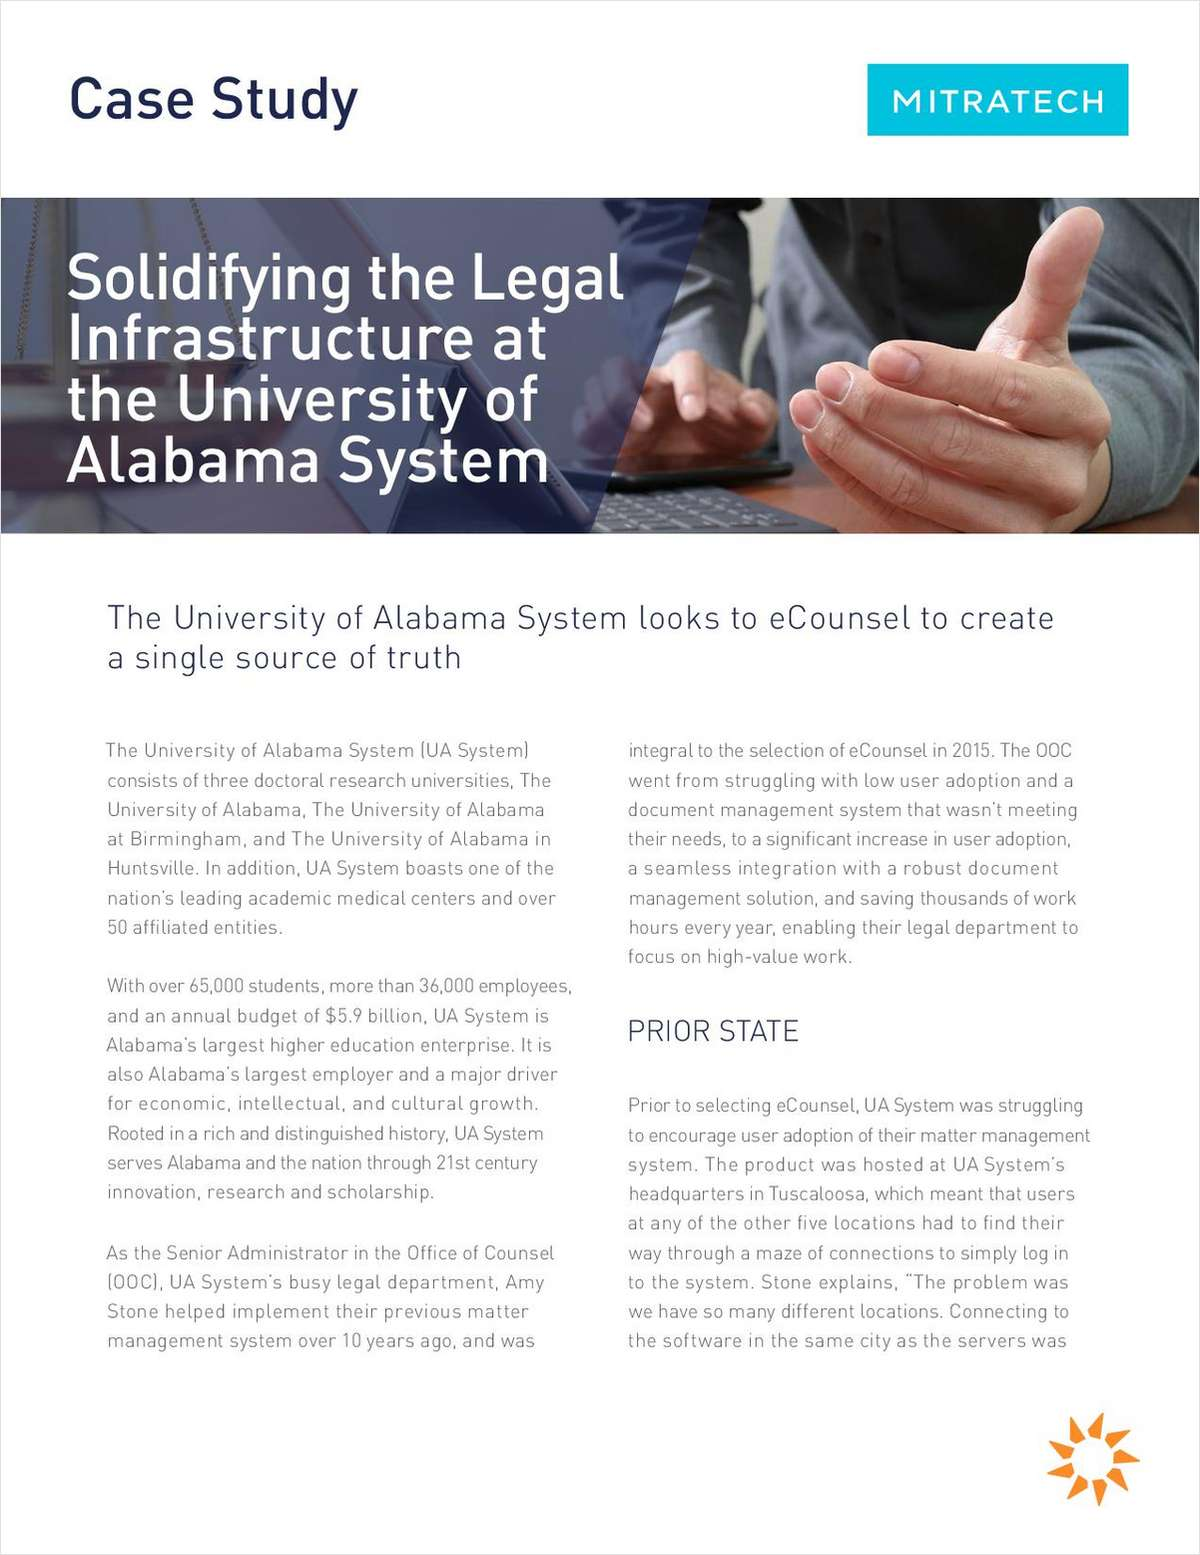 Solidifying the Legal Infrastructure at the University of Alabama System